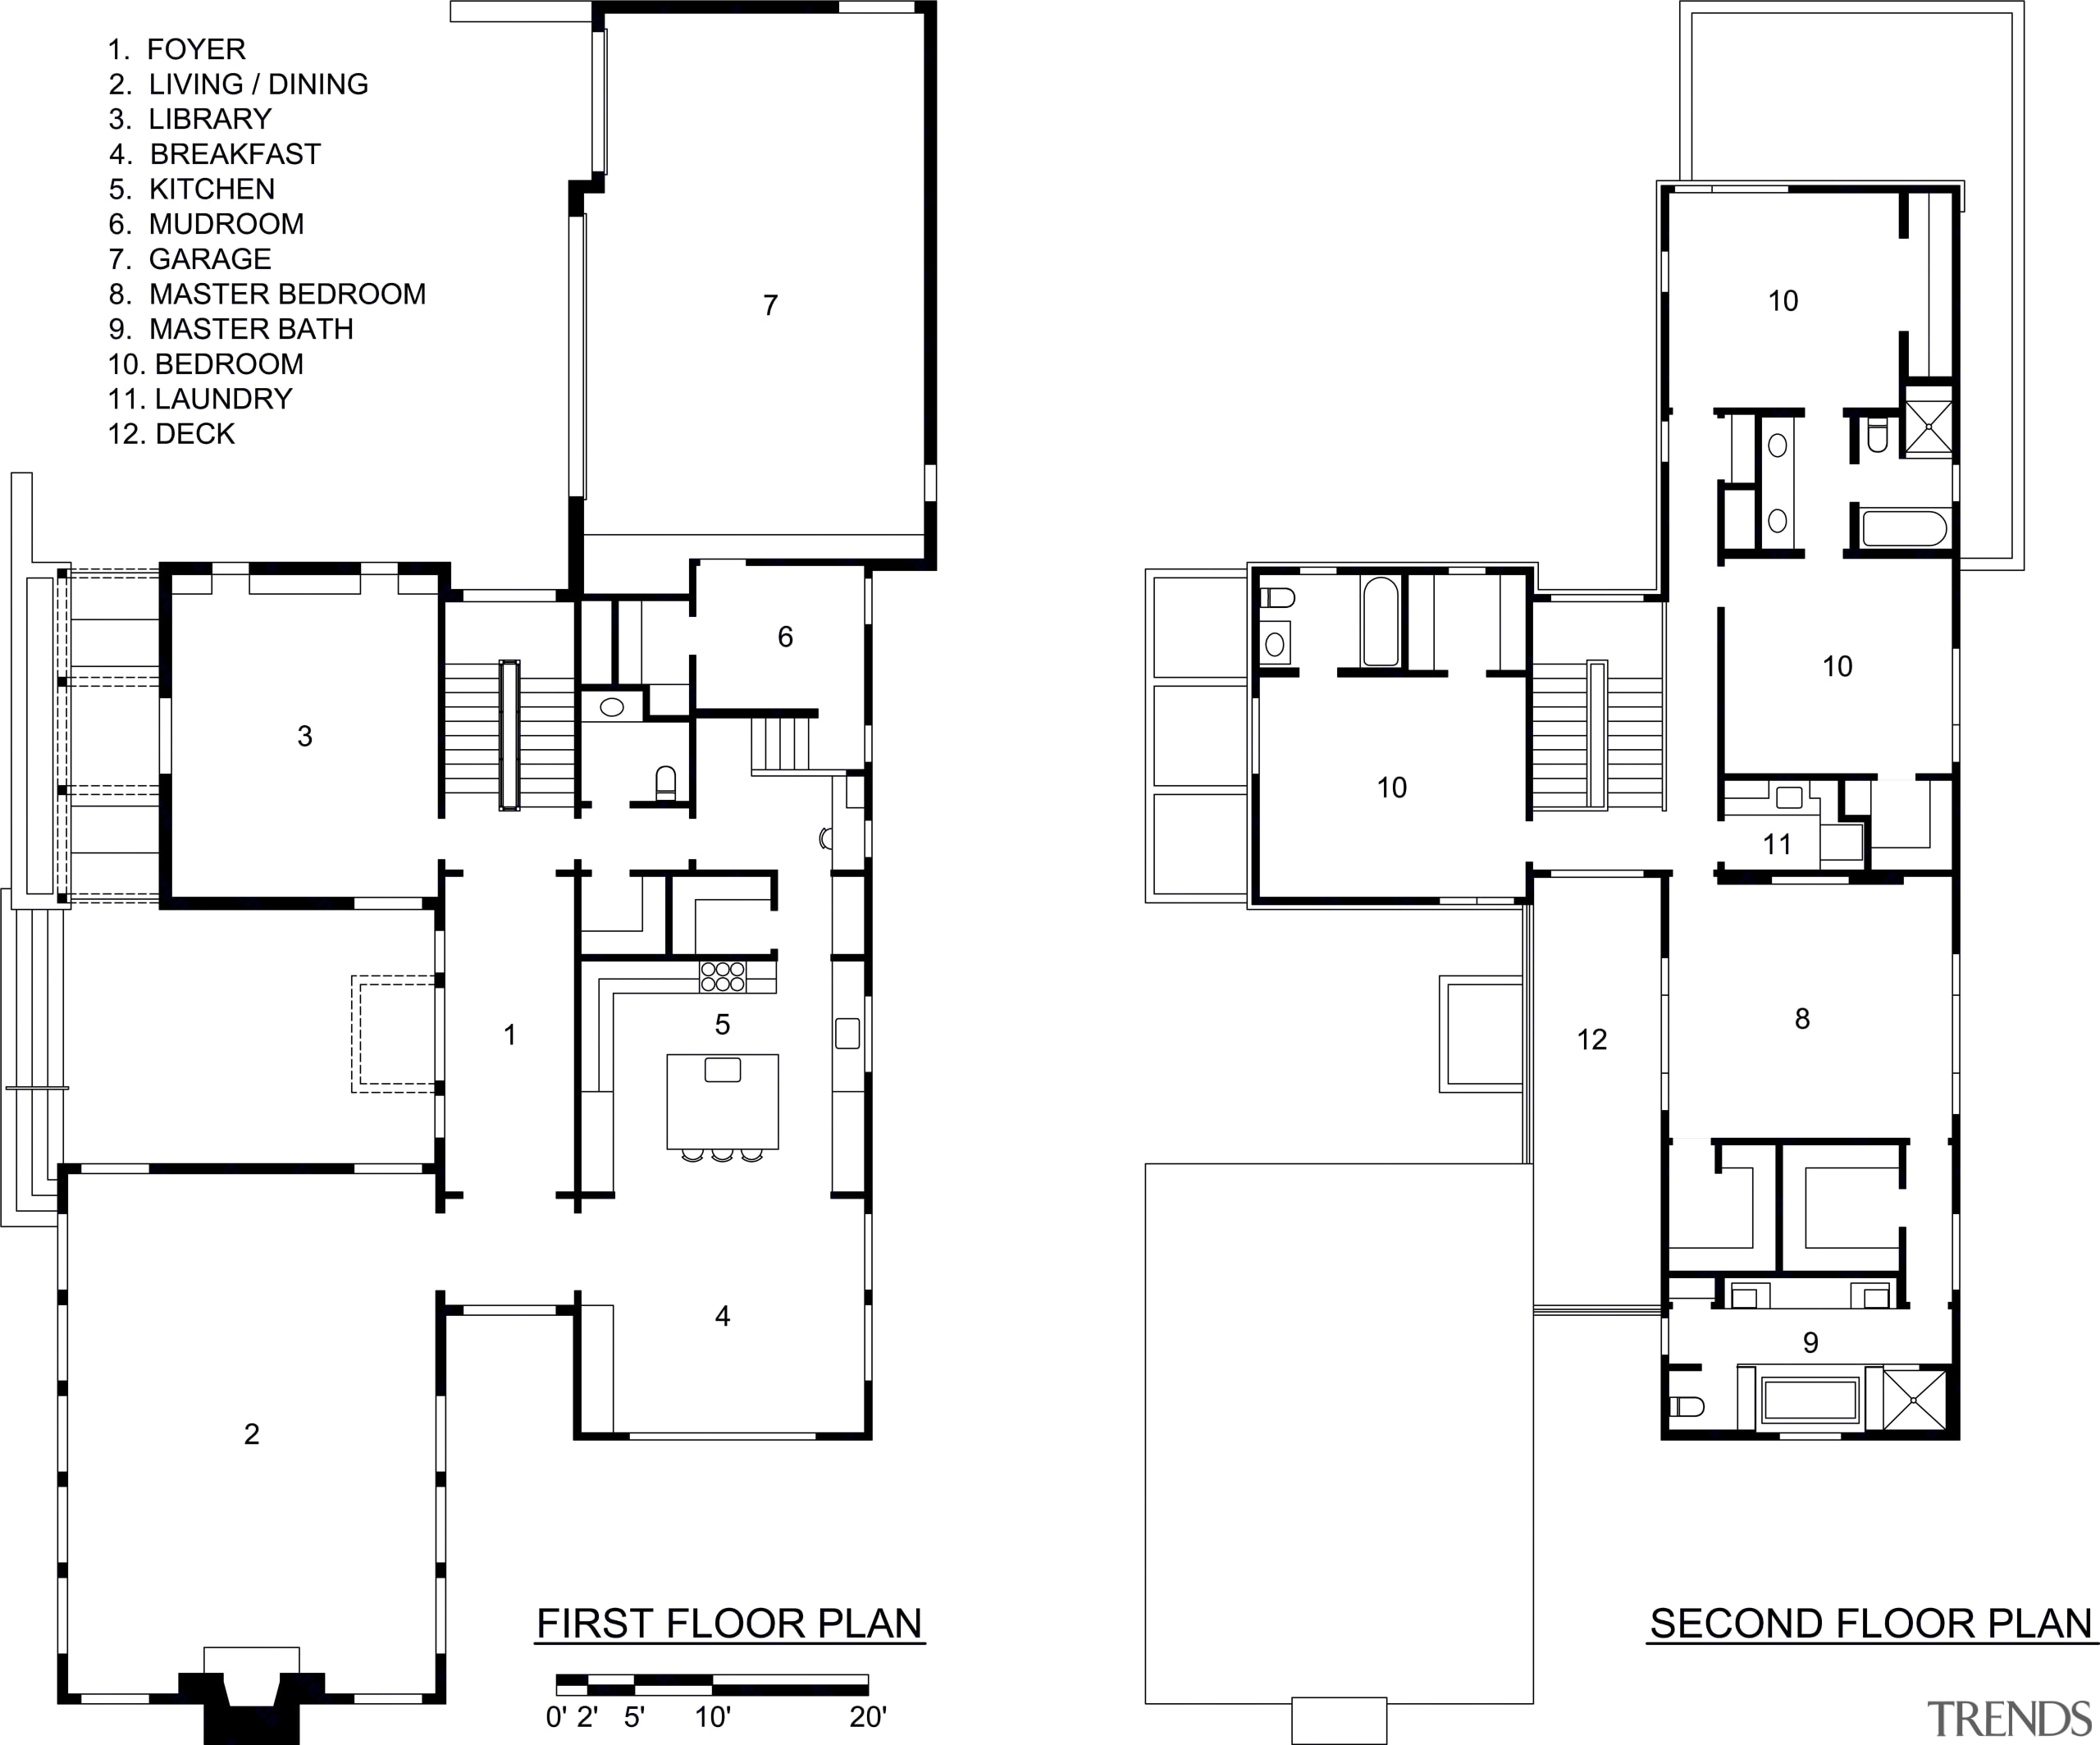 floor plan complete with legend architecture, area, black and white, design, diagram, drawing, floor plan, font, line, product design, square, technical drawing, text, white